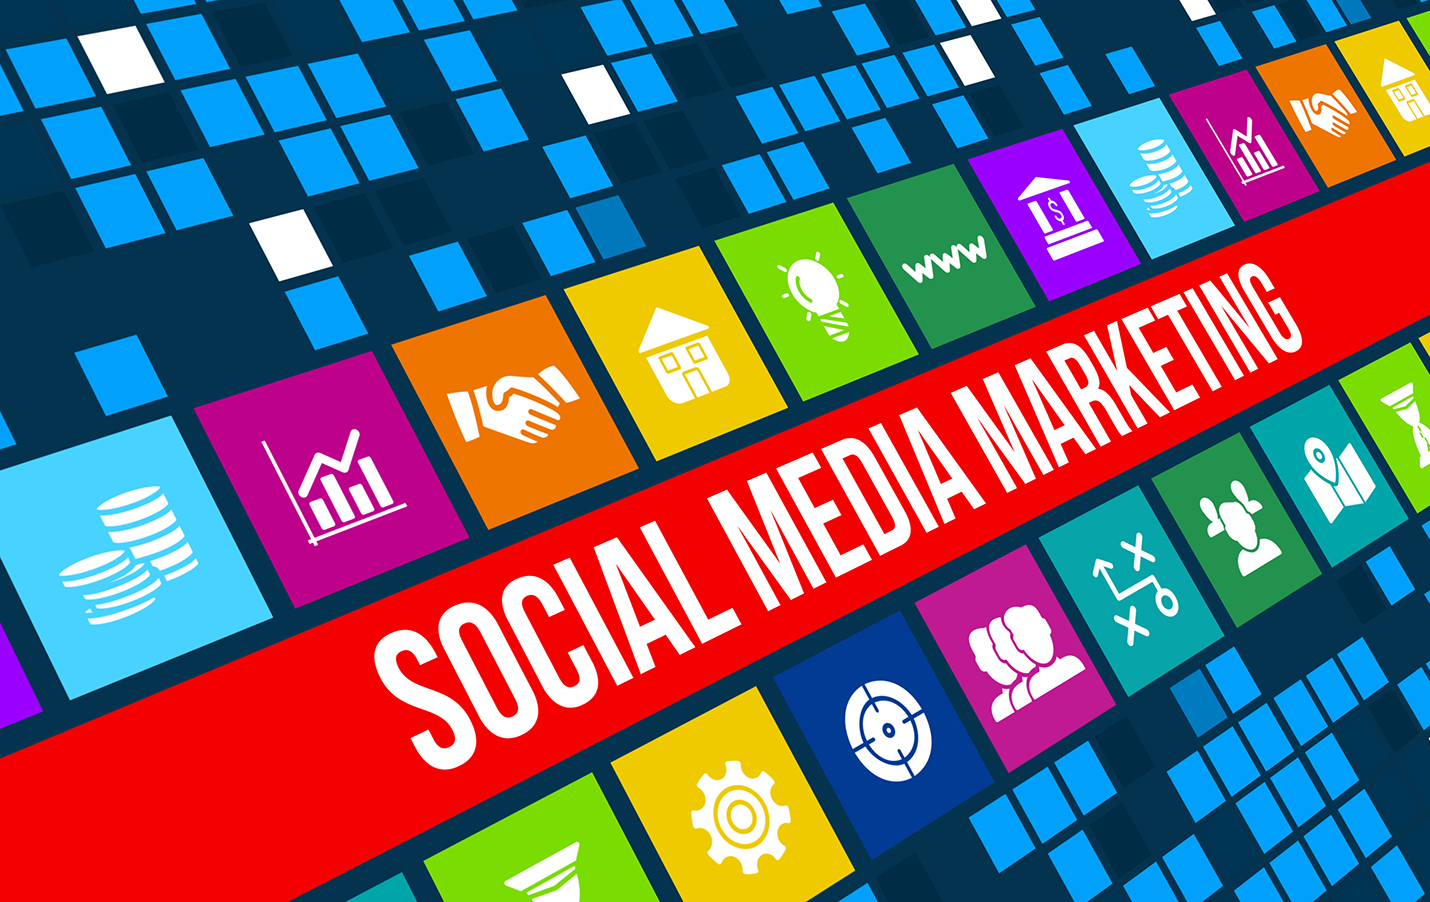 social media marketing jobs